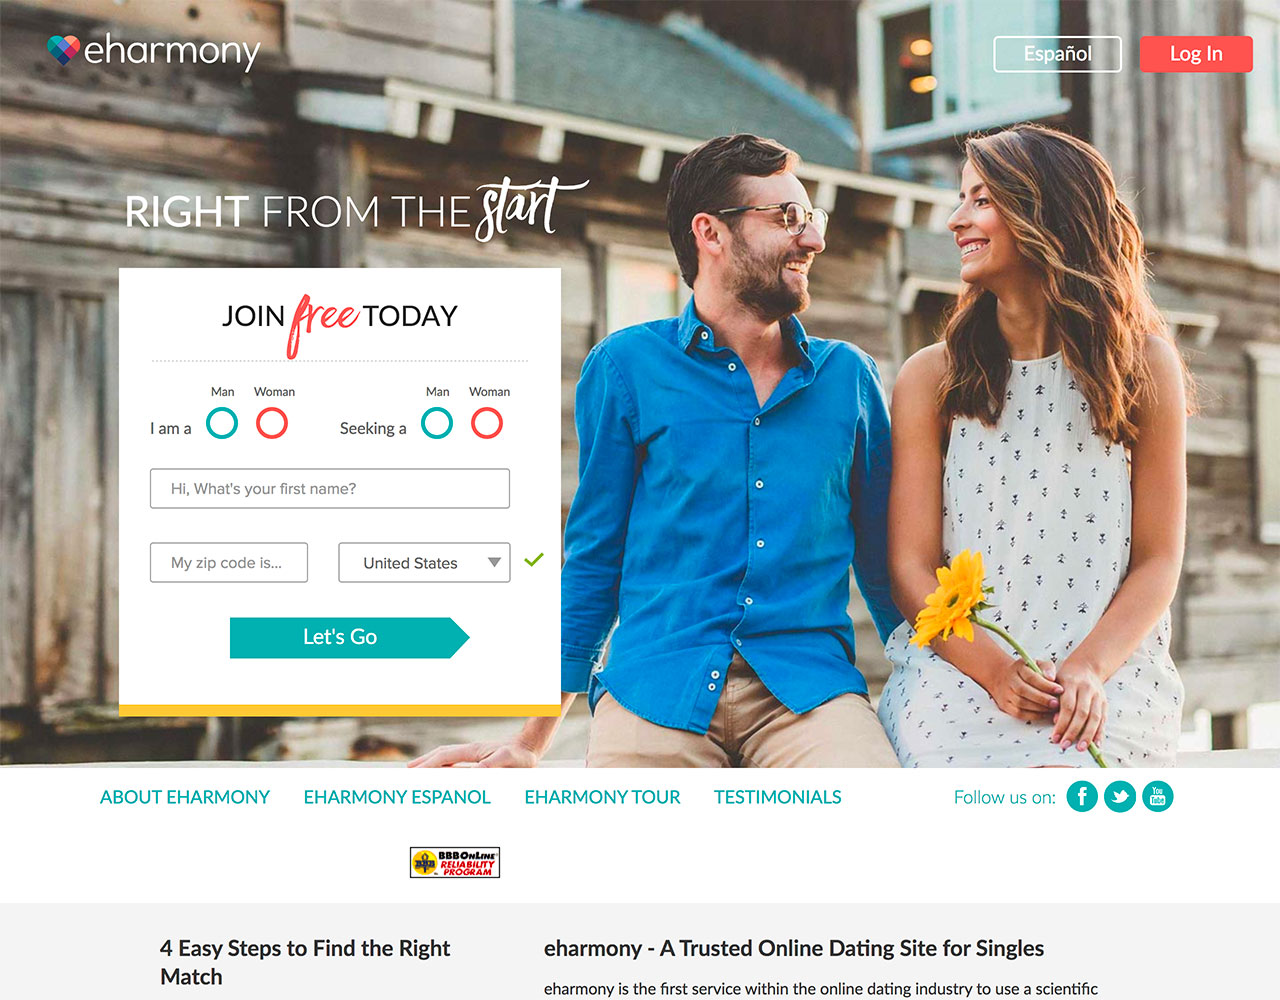 Dating sites: eHarmony | 30% OFF a 6-month Membership